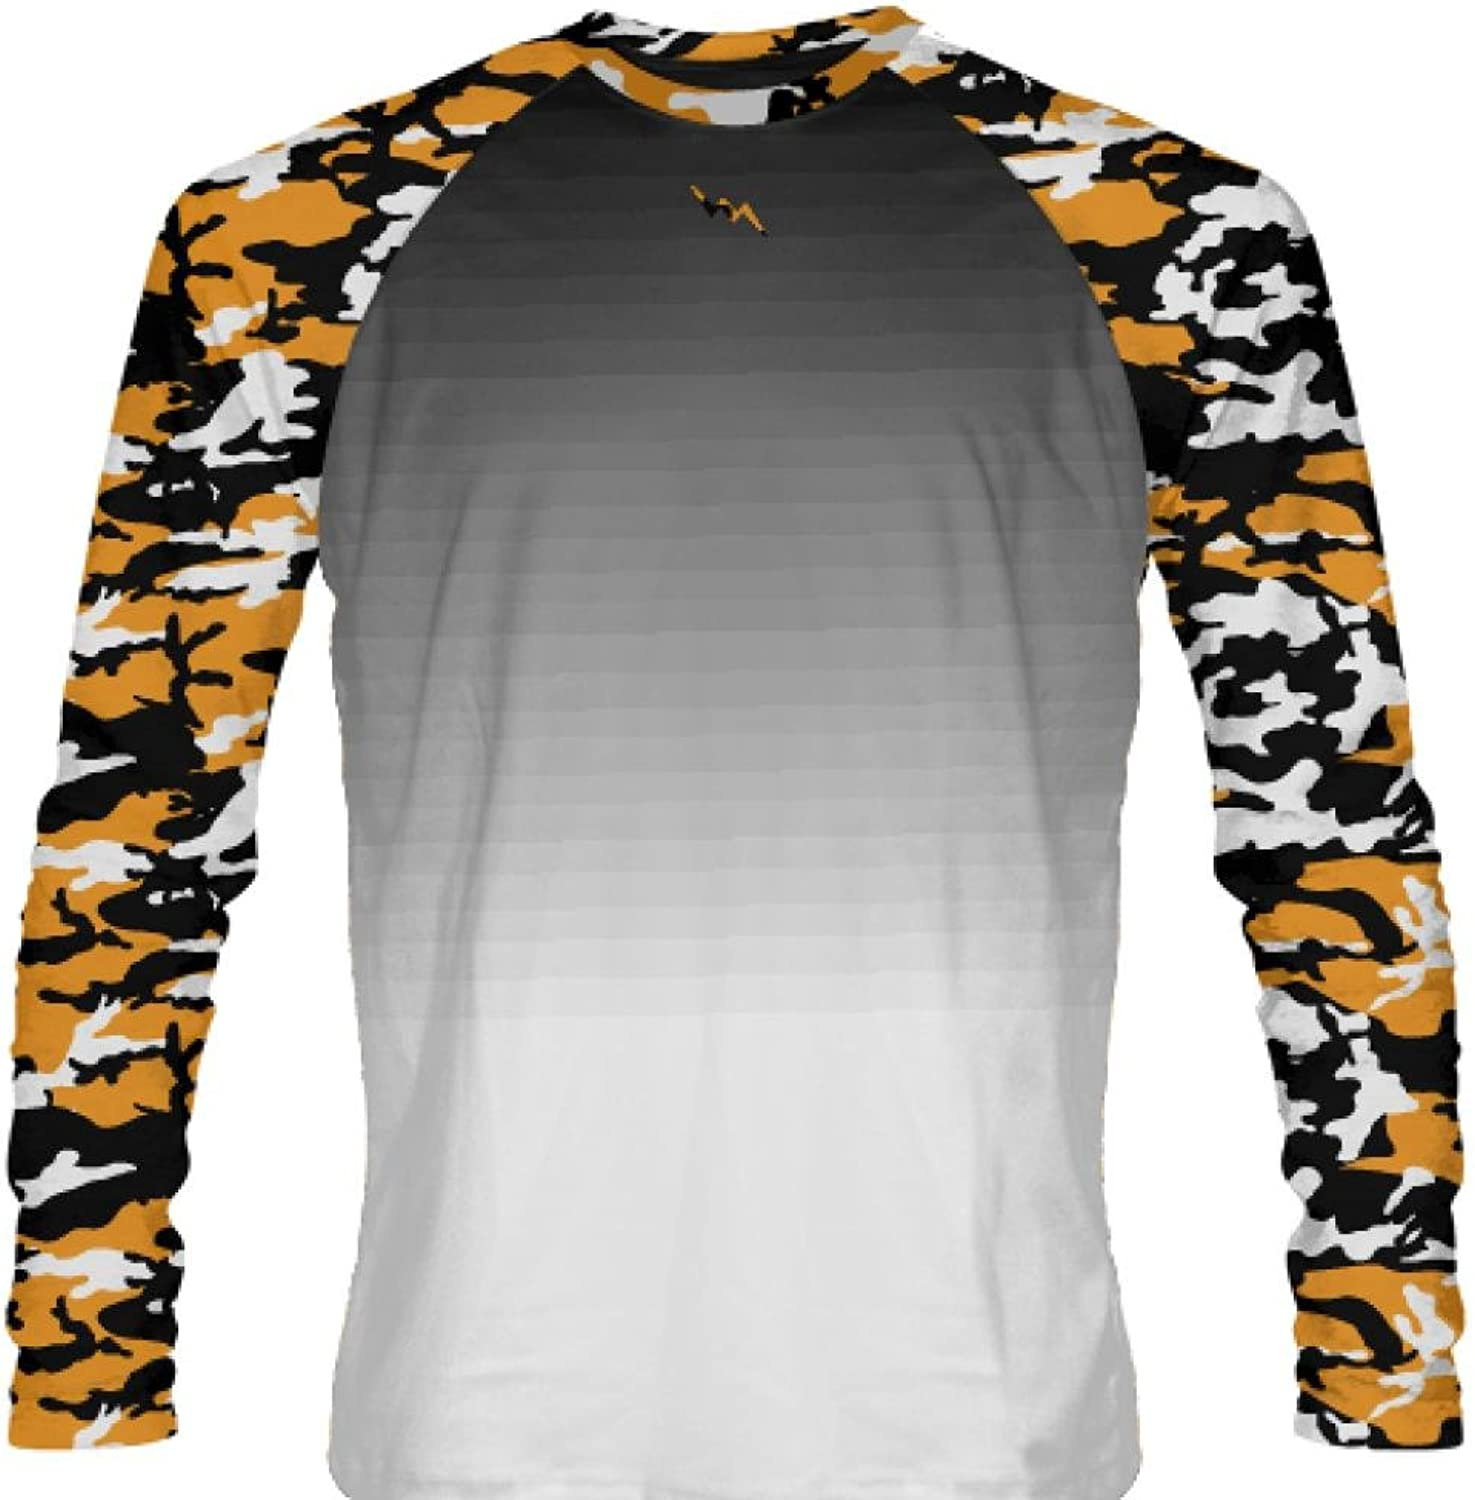 LightningWear orange Camouflage Long Sleeve T Shirts